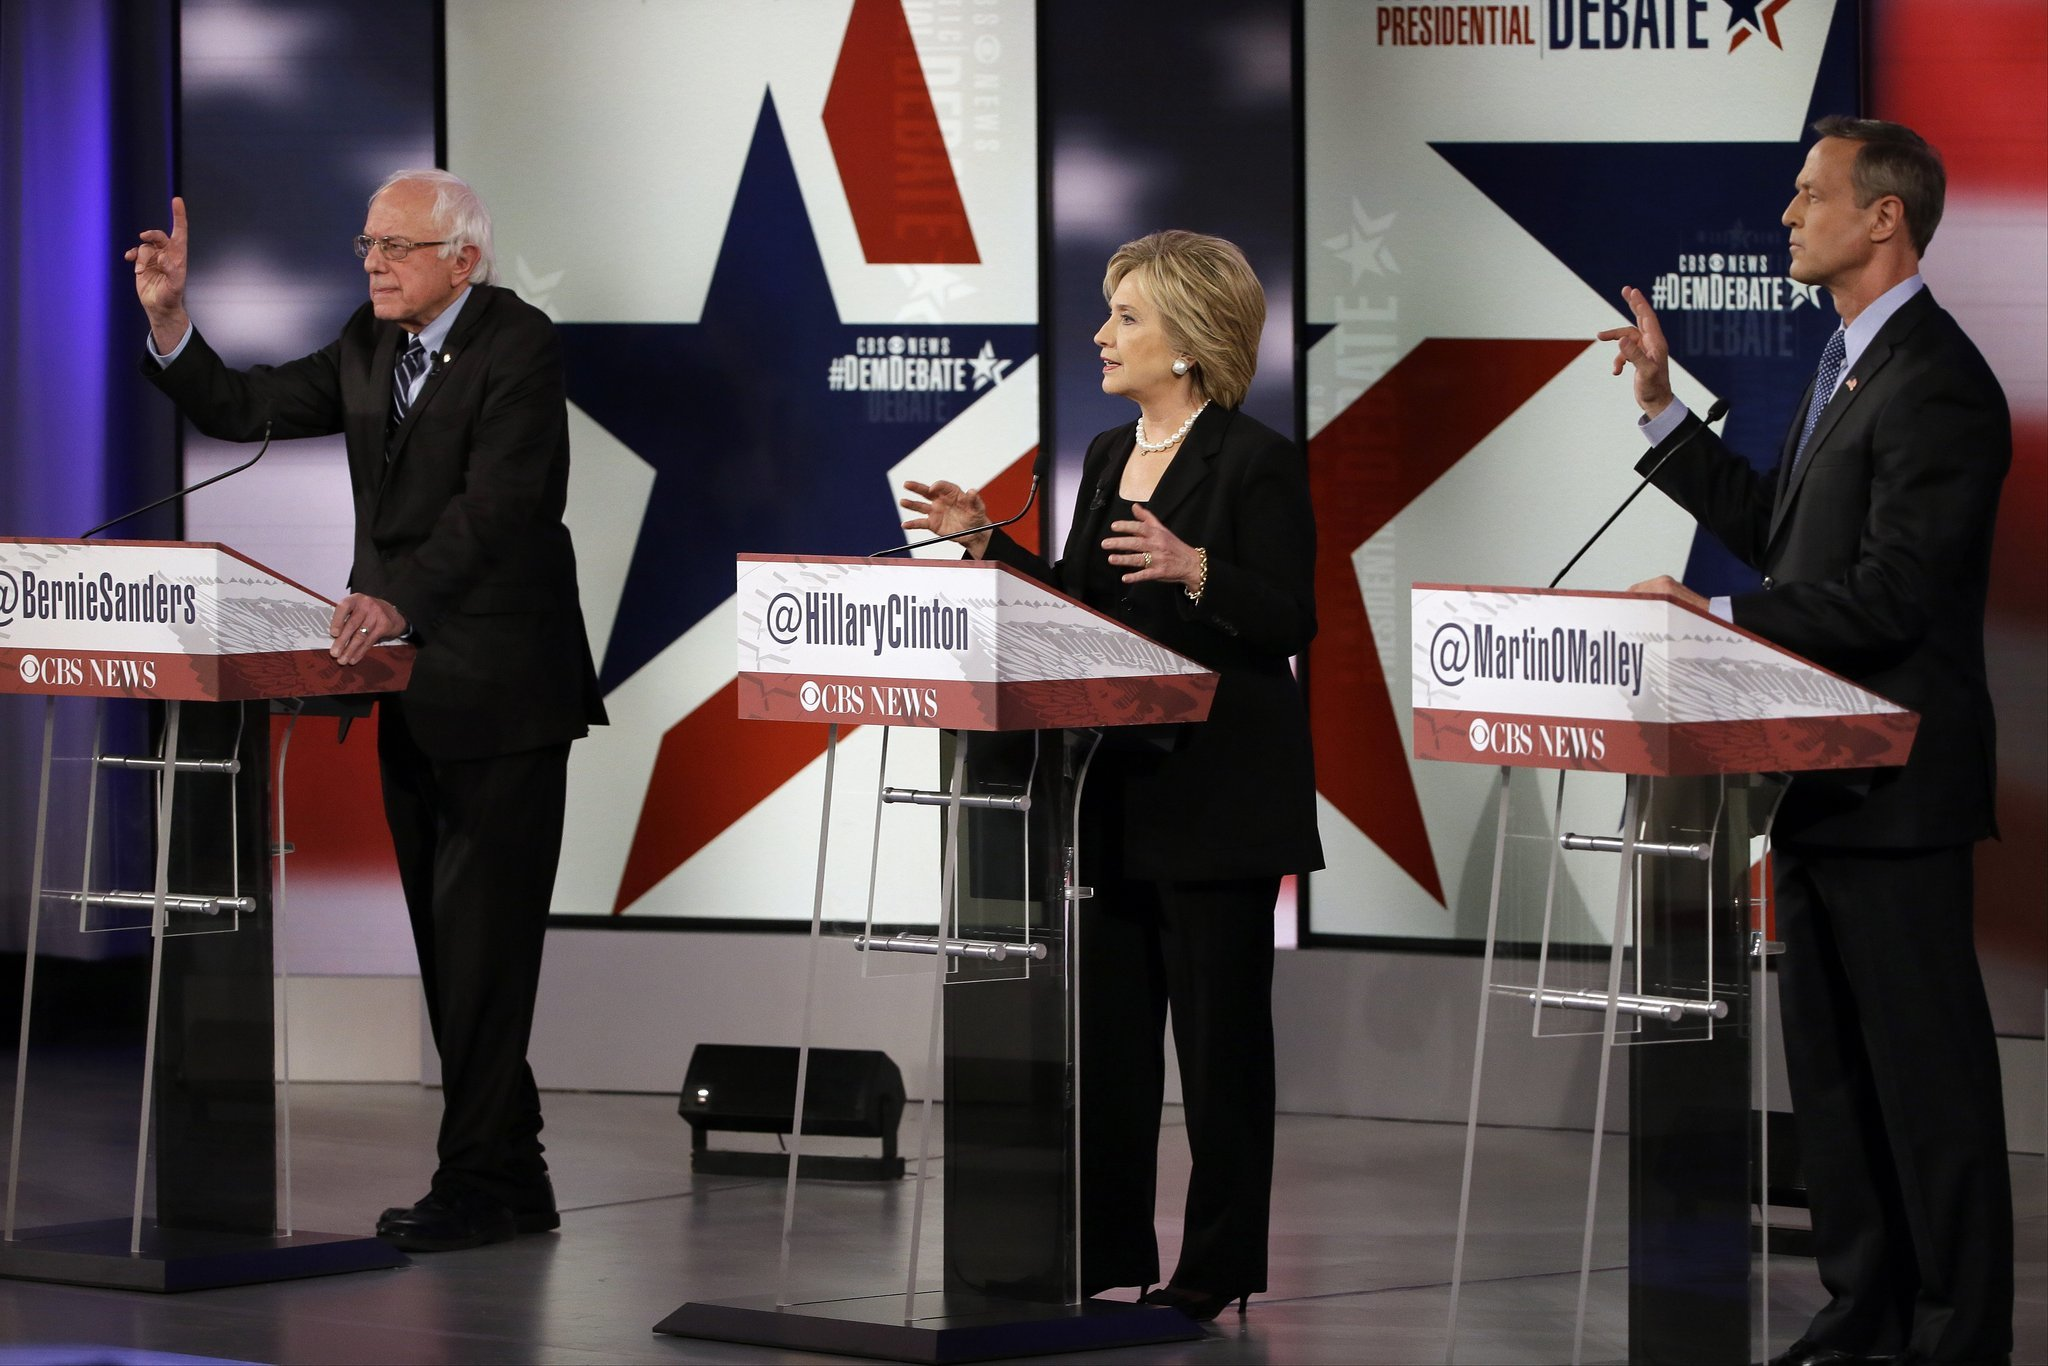 The Democratic candidates at a debate in November. (Charlie Neibergall / Associated Press)